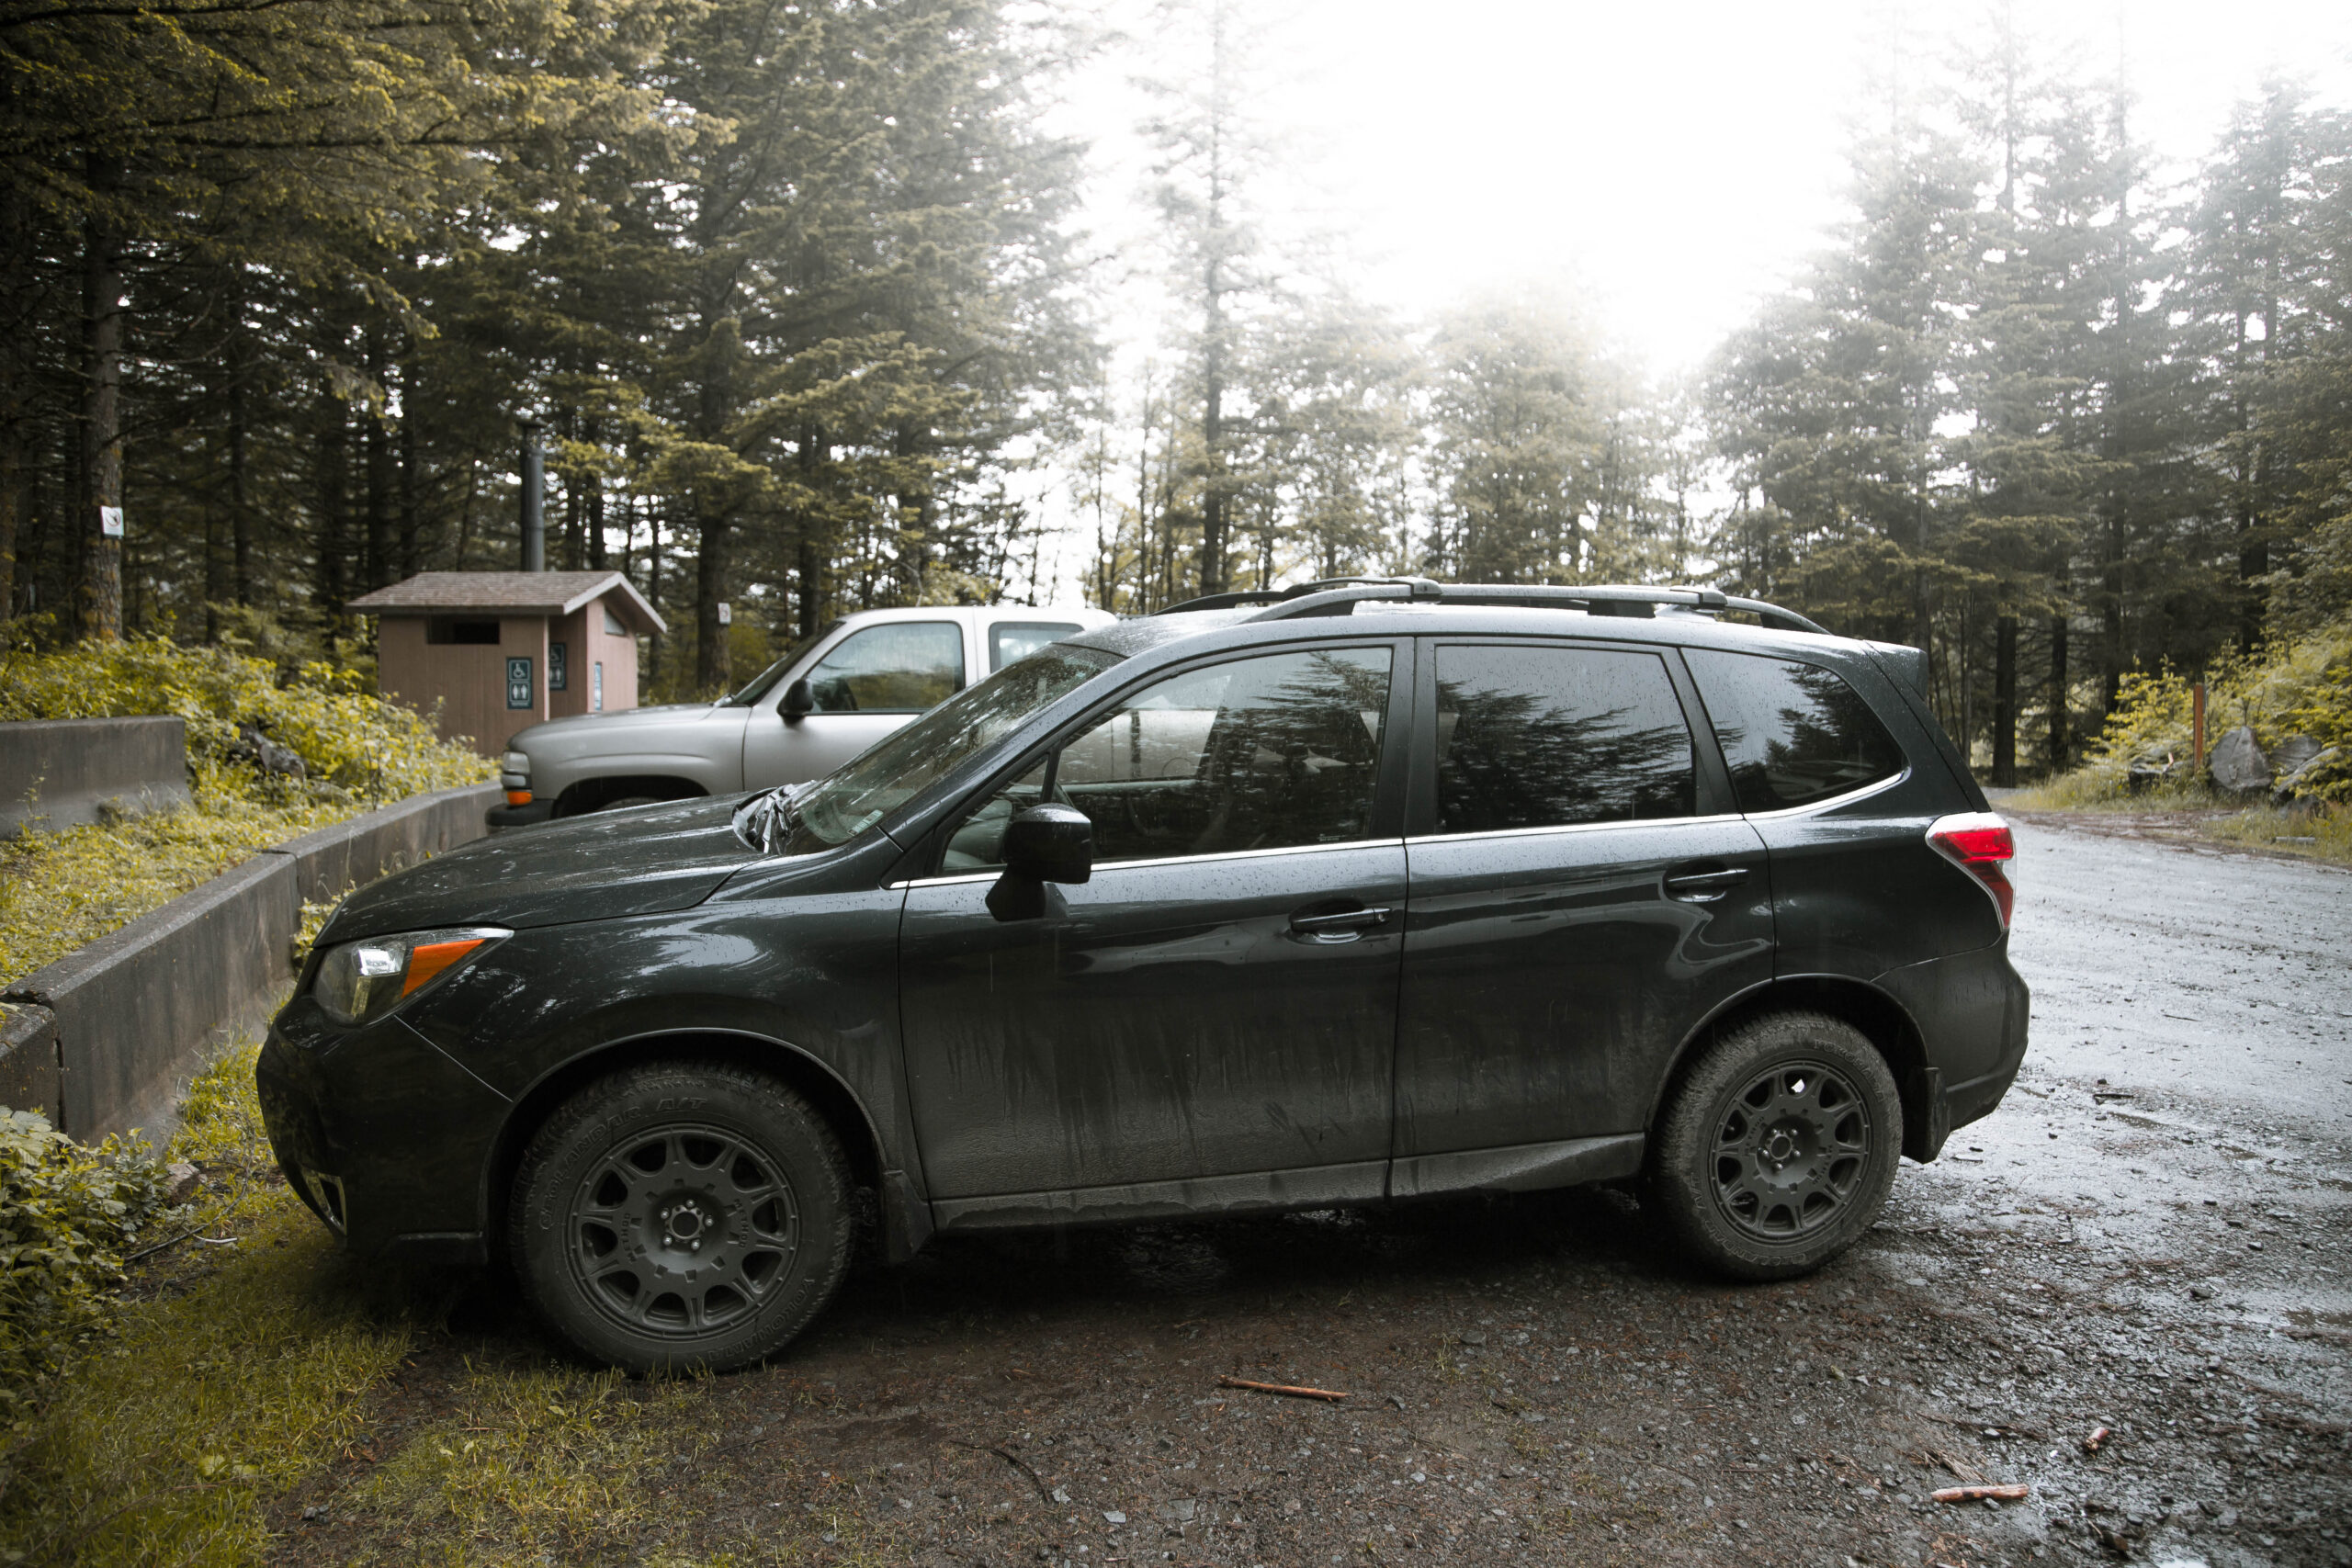 Lifted Subaru Forester on All Terrain Tires and Lift kit